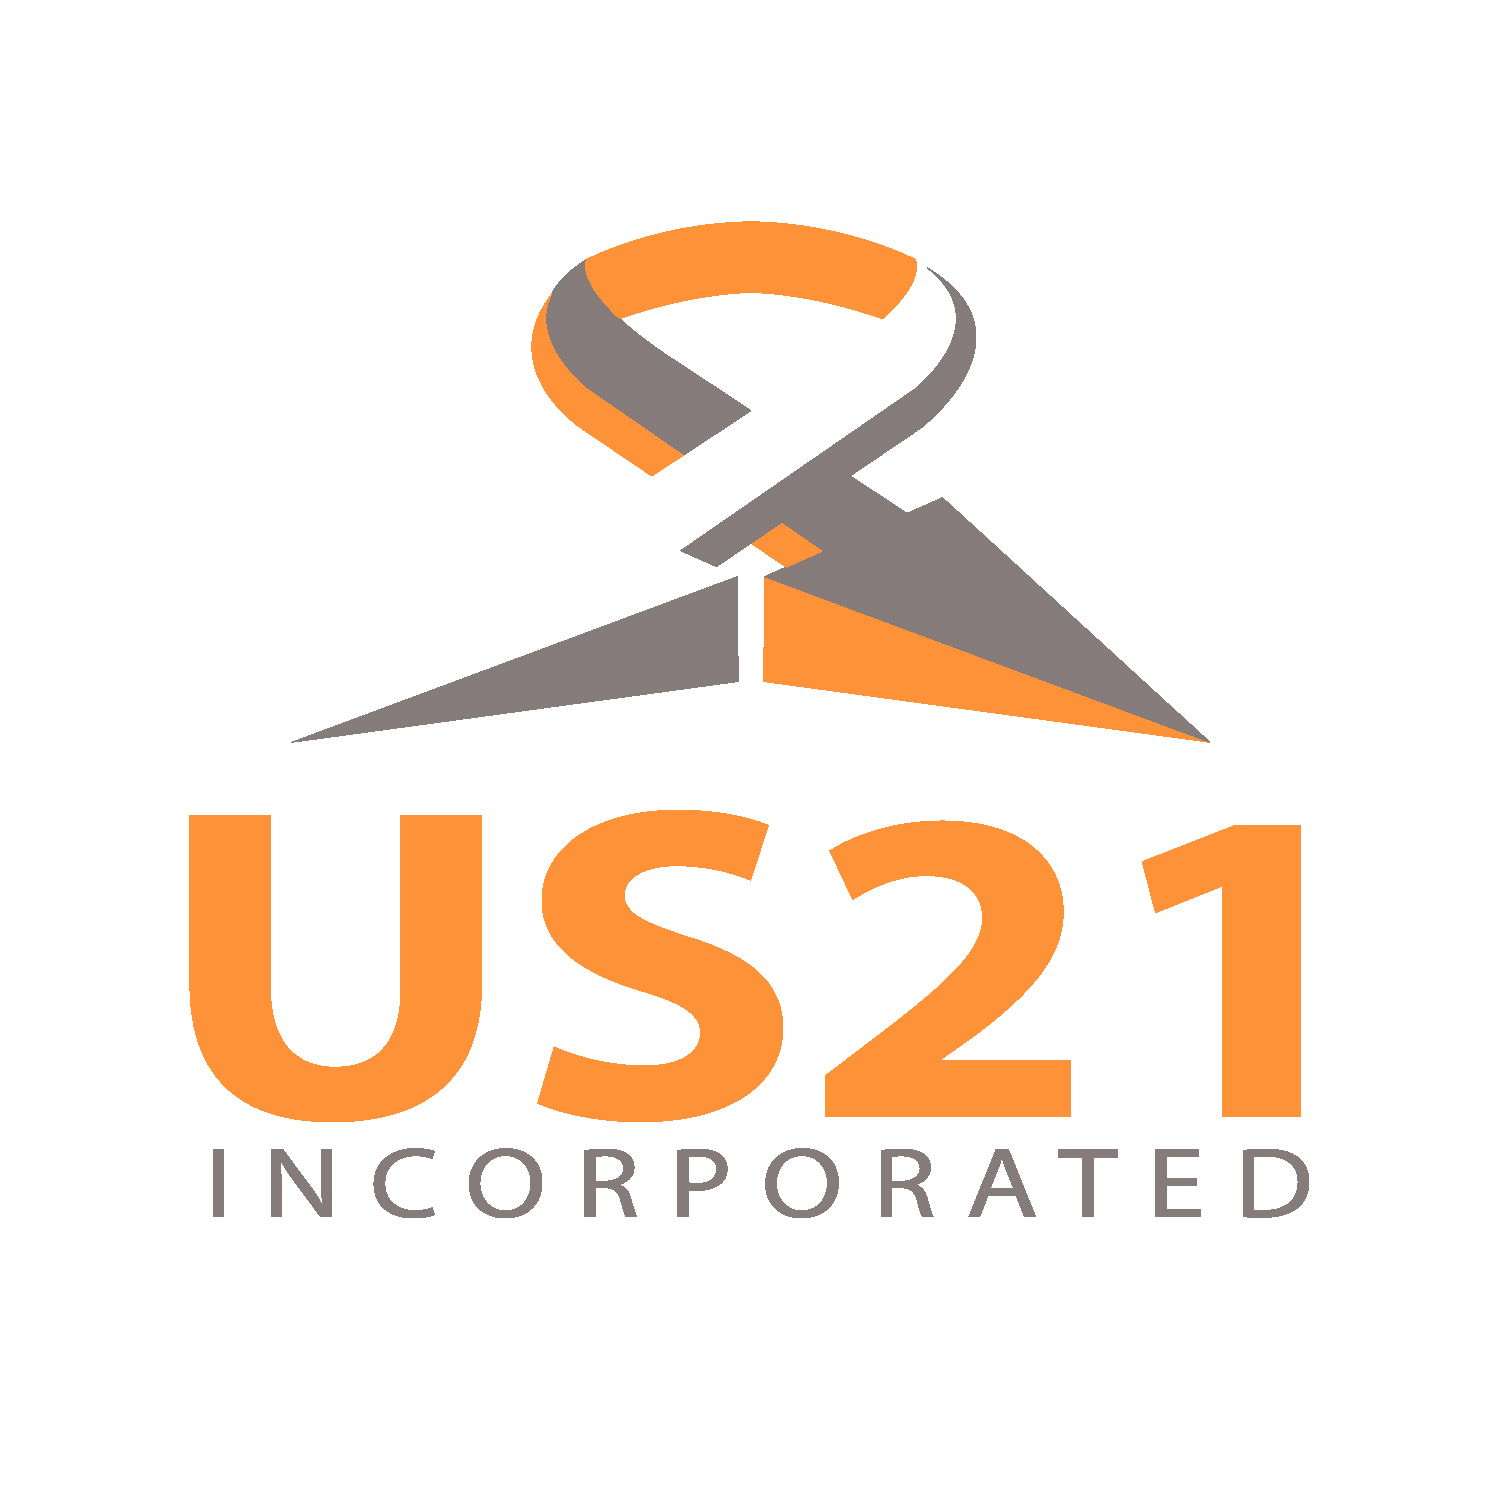 Logo Design by Jace Design for US21 Logo design - Design #3650